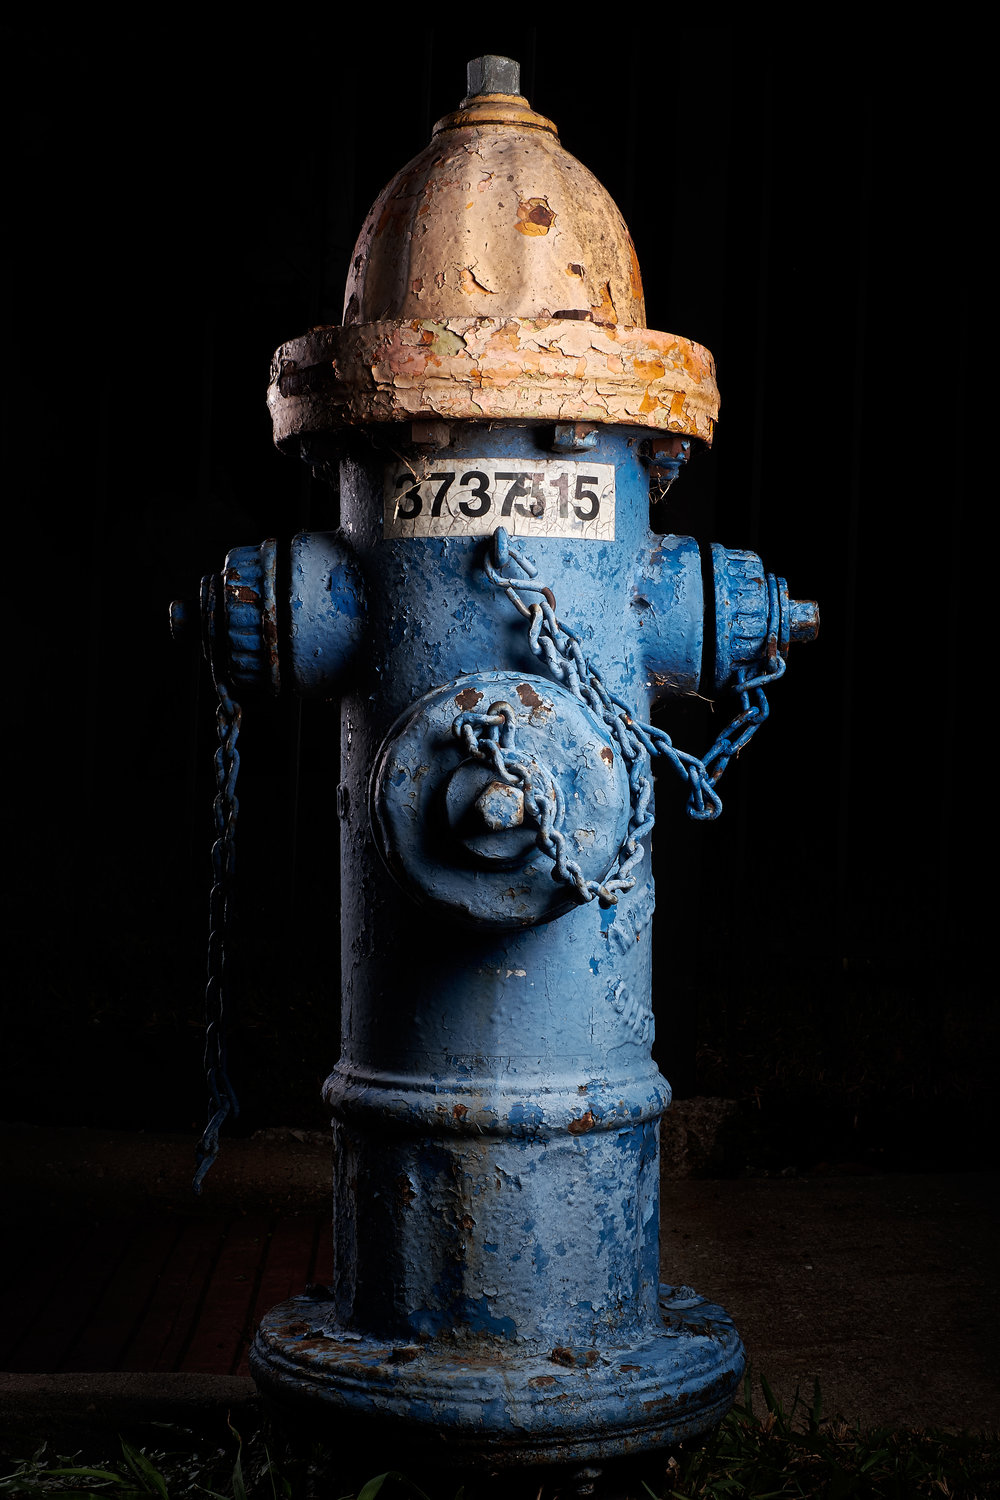 Hydrant Portrait #56